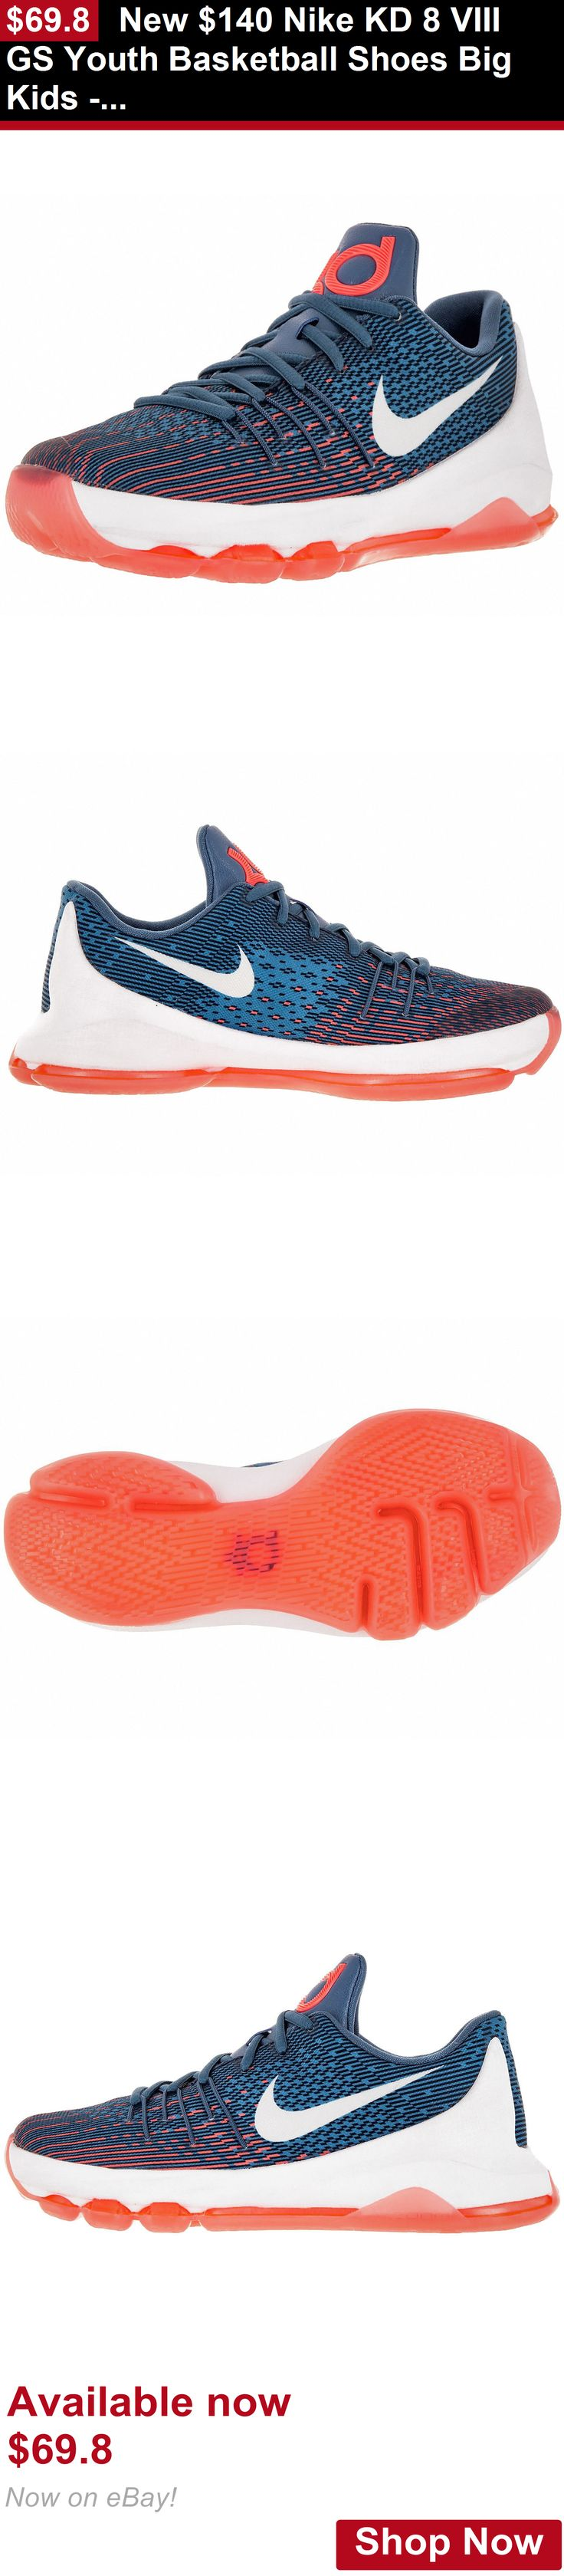 Children boys clothing shoes and accessories: New $140 Nike Kd 8 Viii Gs Youth Basketball Shoes Big Kids - Ocean Fog Blue BUY IT NOW ONLY: $69.8